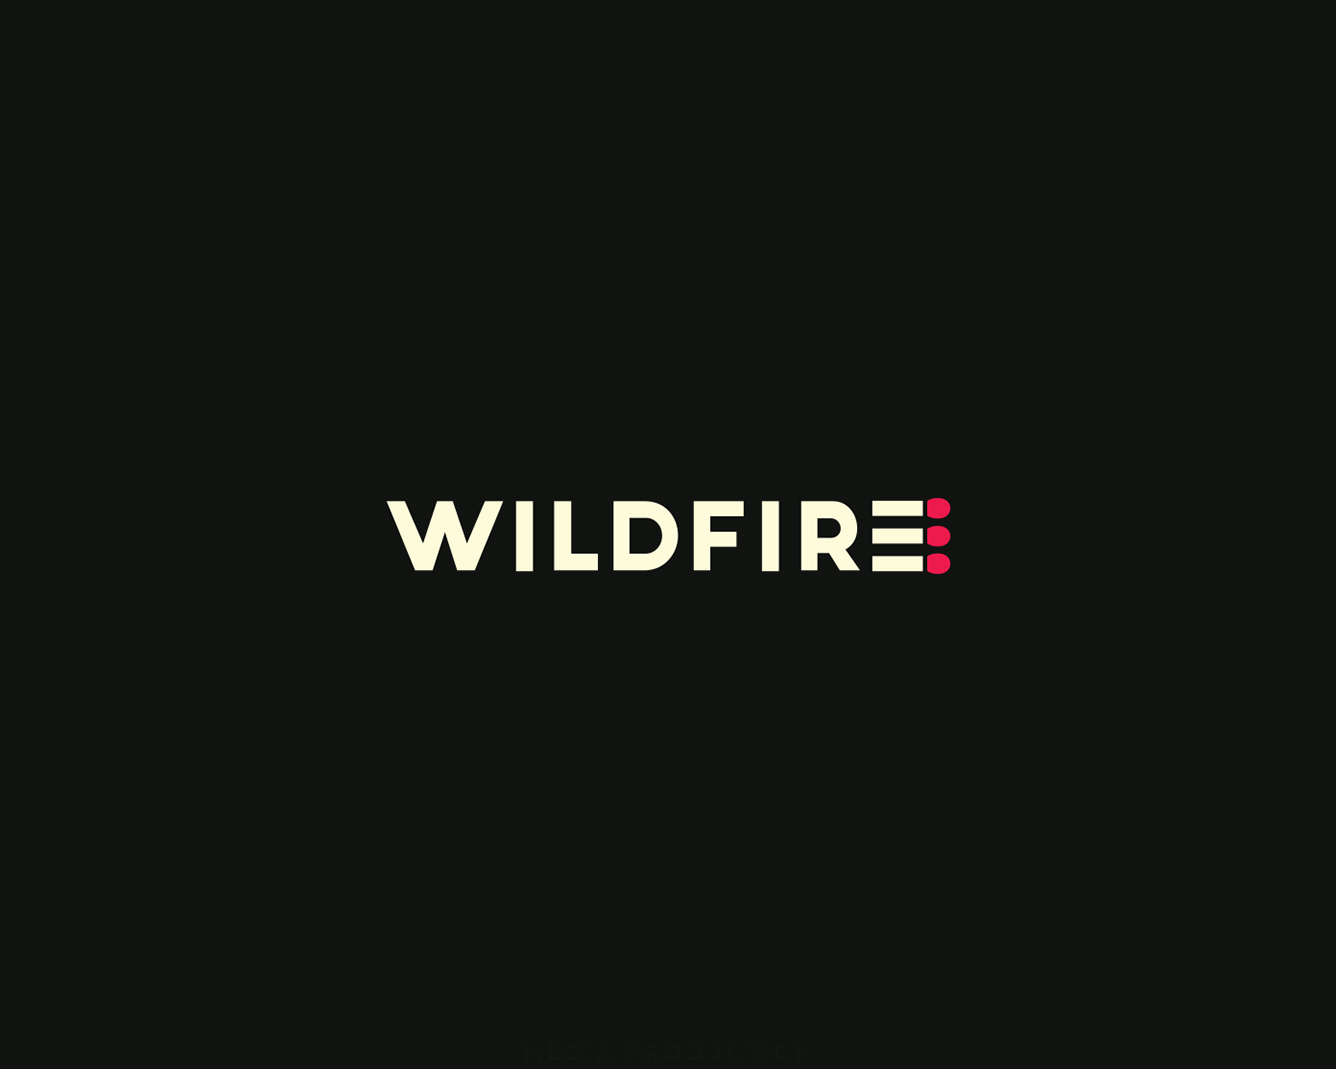 Designer creates logos with hidden meanings - 25